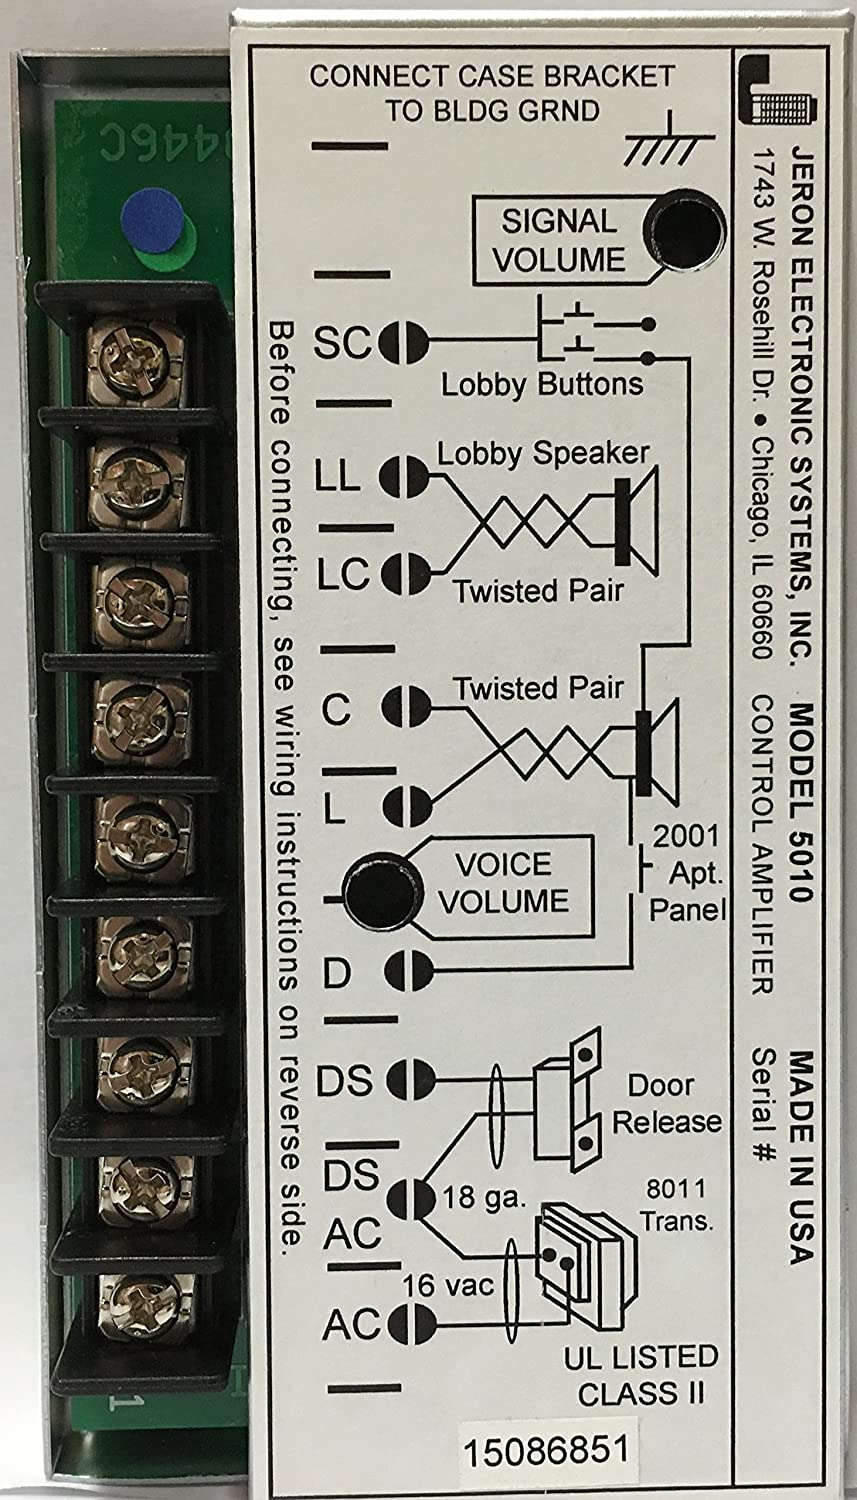 Jeron 5010 Wiring Diagram 25 Images 4 Wire Intercom Sl1500 Amplifier Amazon Com Industrial Scientific At Cita